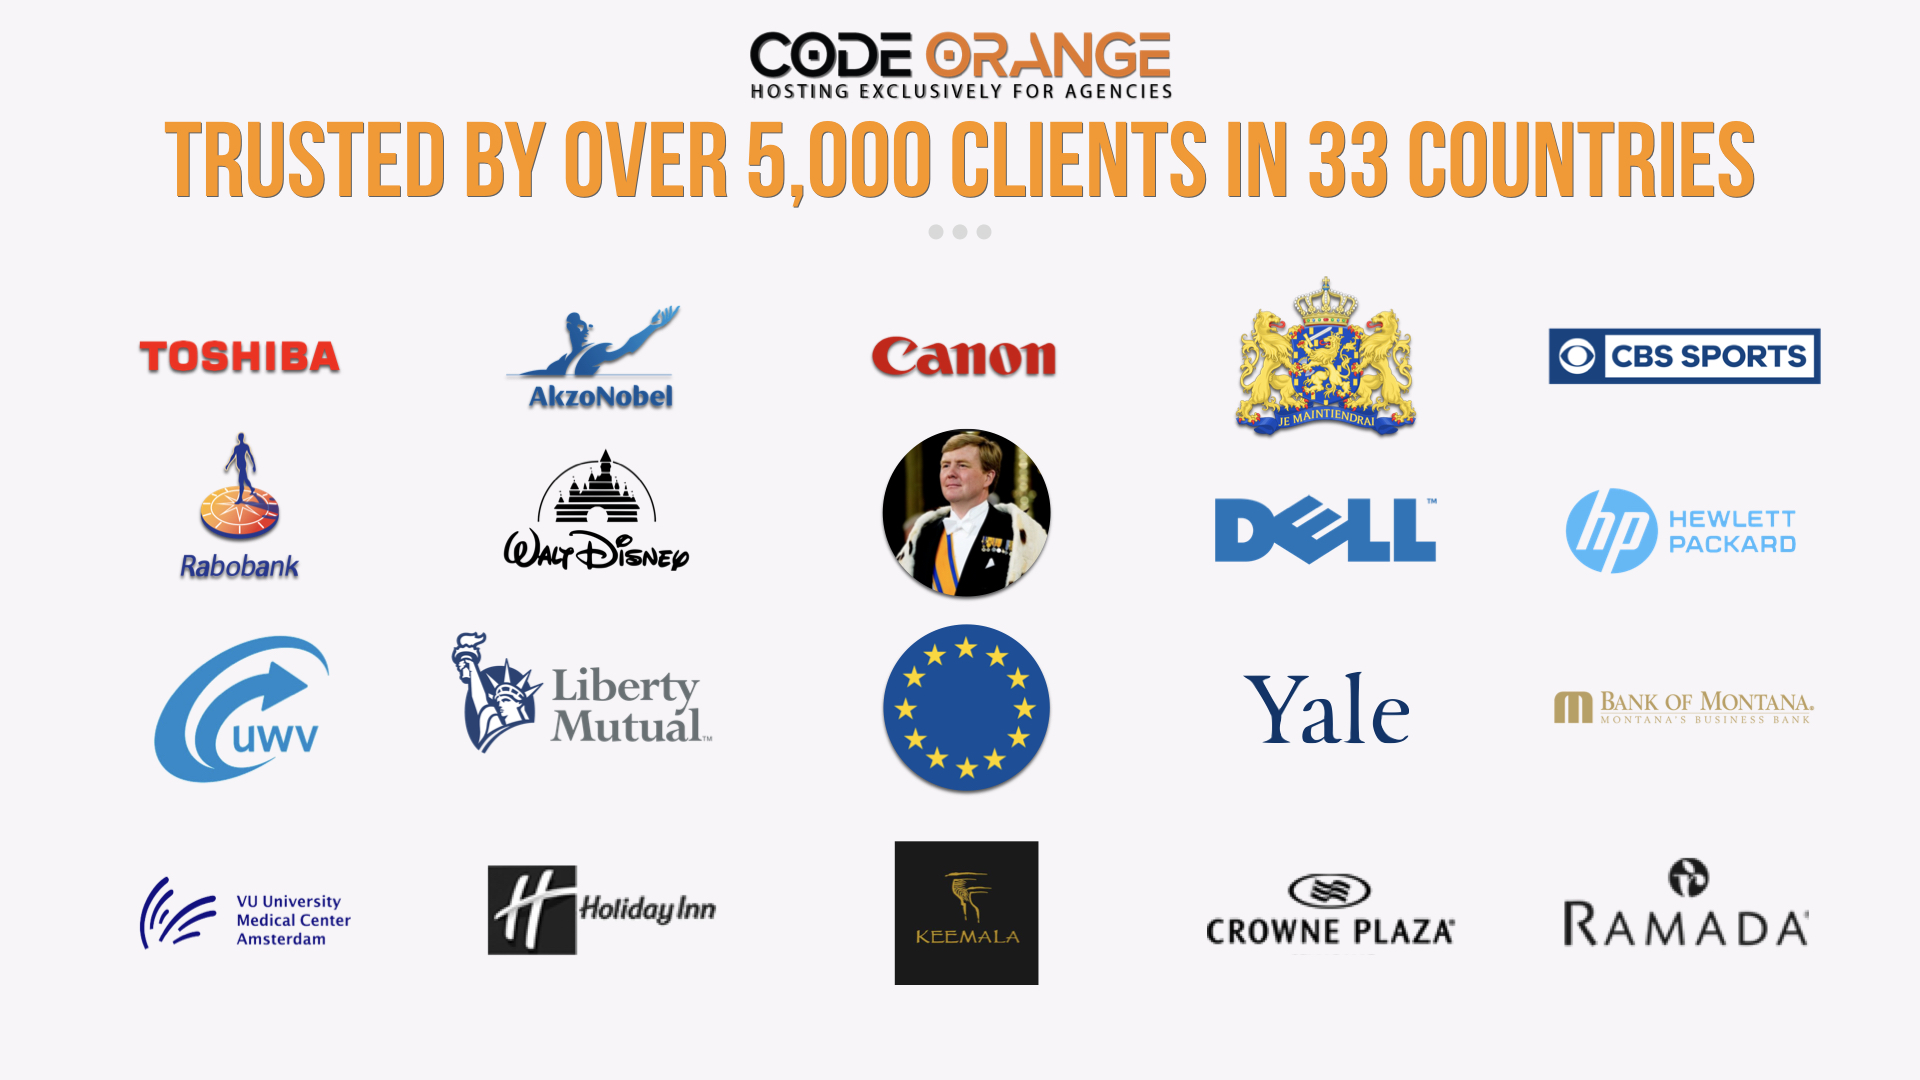 Code Orange Other Clients